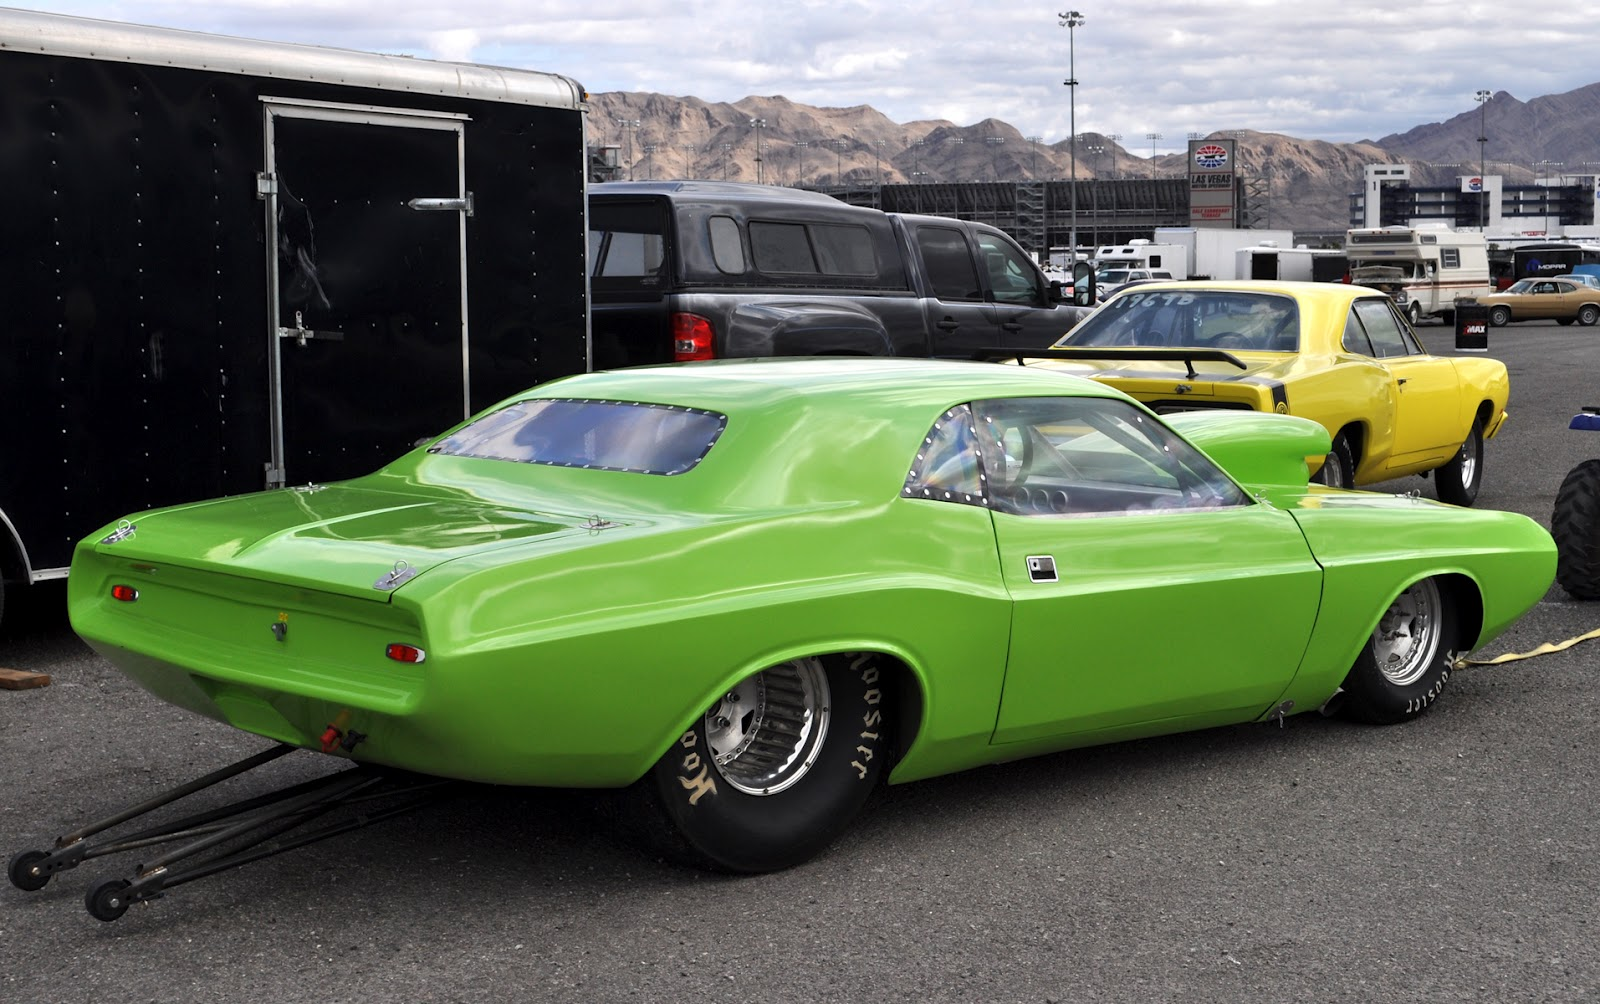 Just A Car Guy: Mopar Muscle cars from all over the pits at Mopars ...